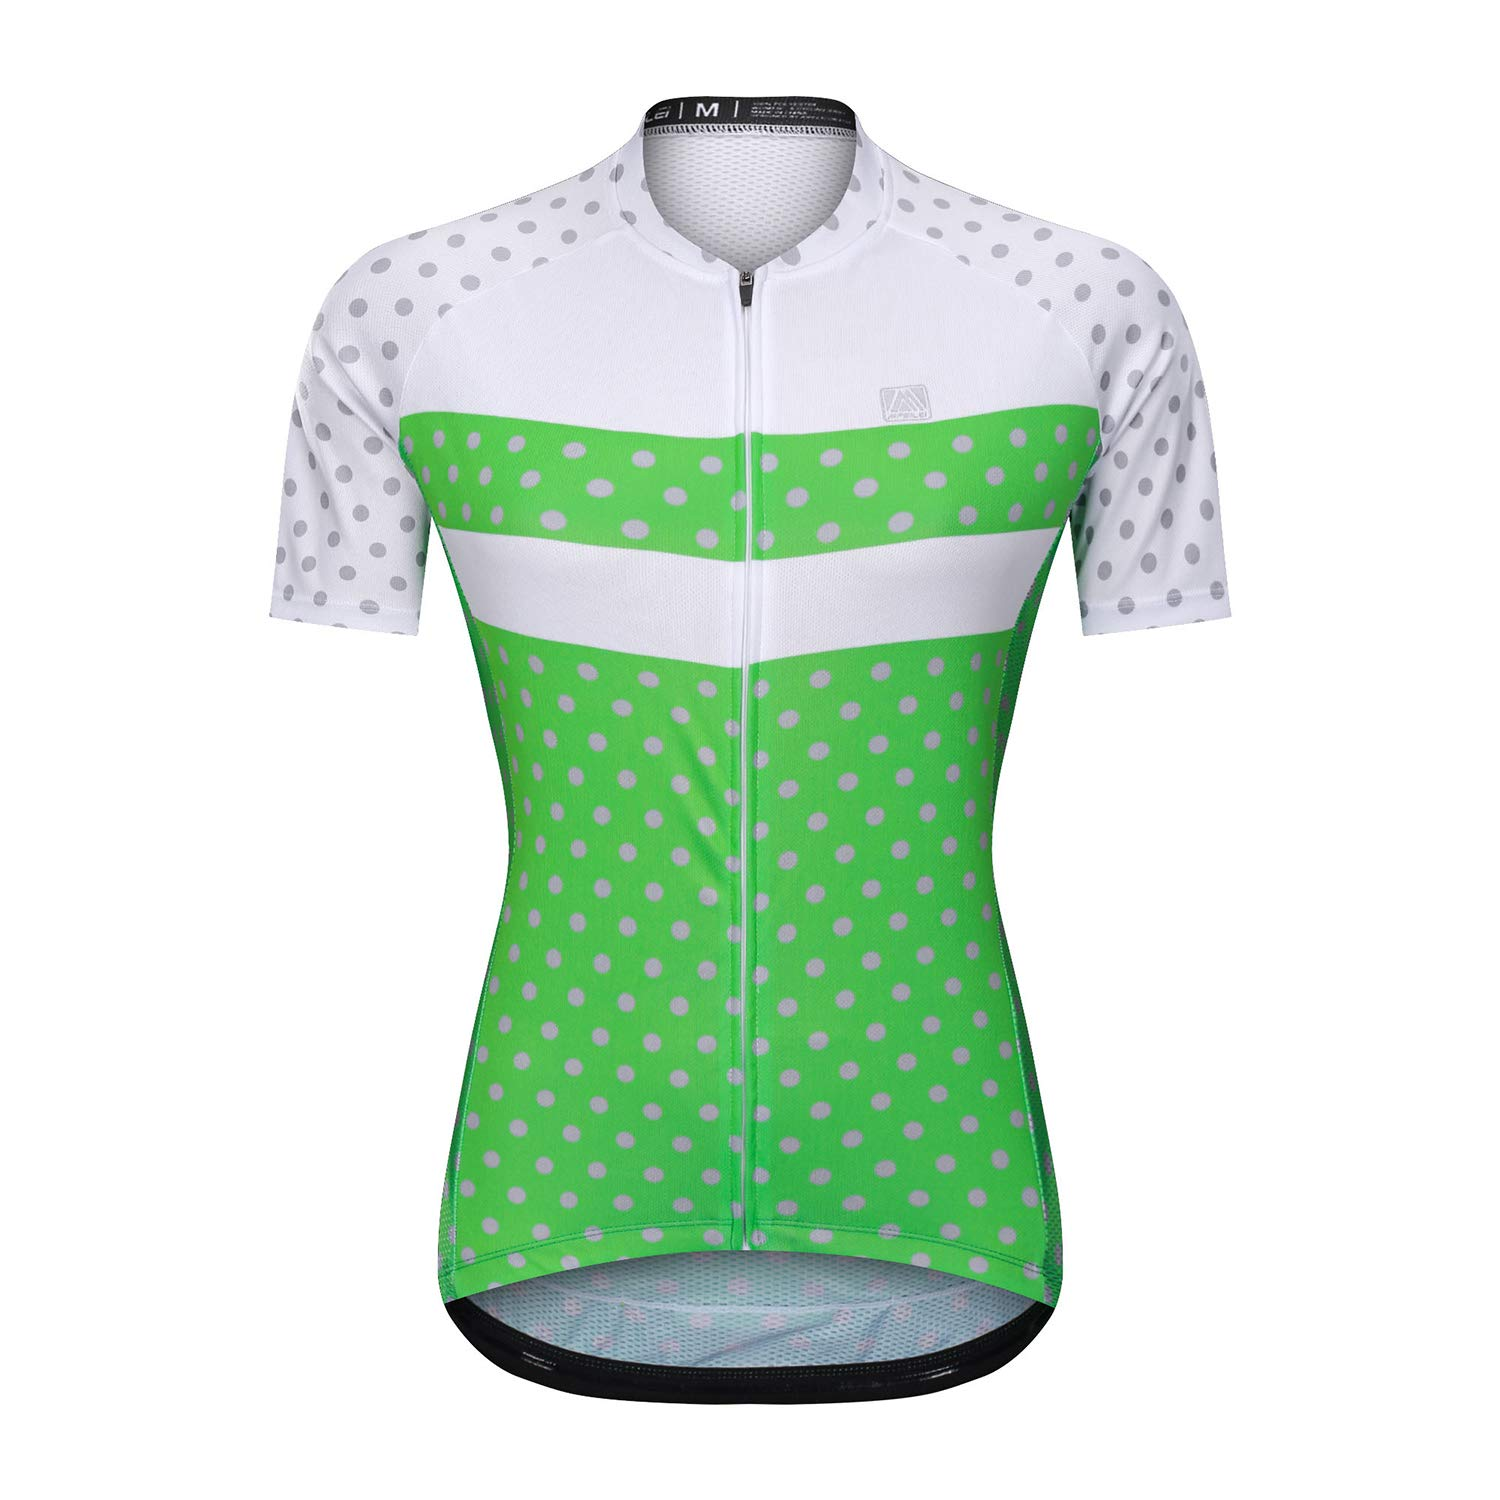 Women Cycling Jersey Short Sleeve Cycling Clothing Sets Ladies Jacket Cycling Shirt with Shorts Padded Pants